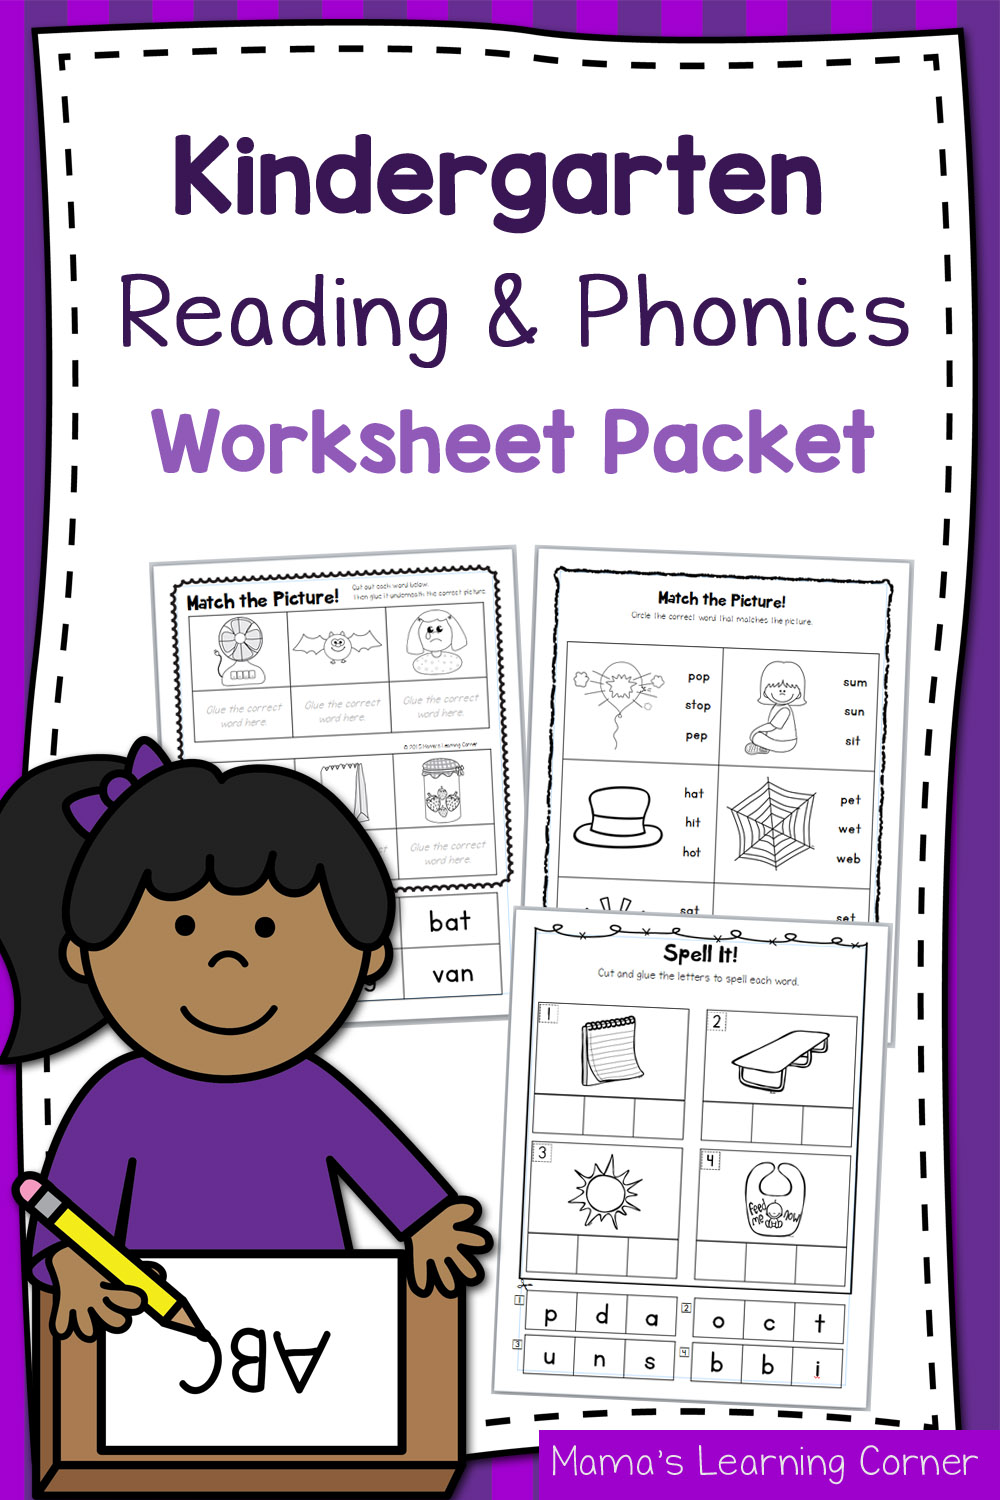 hight resolution of Kindergarten Reading and Phonics Worksheet Packet - Mamas Learning Corner